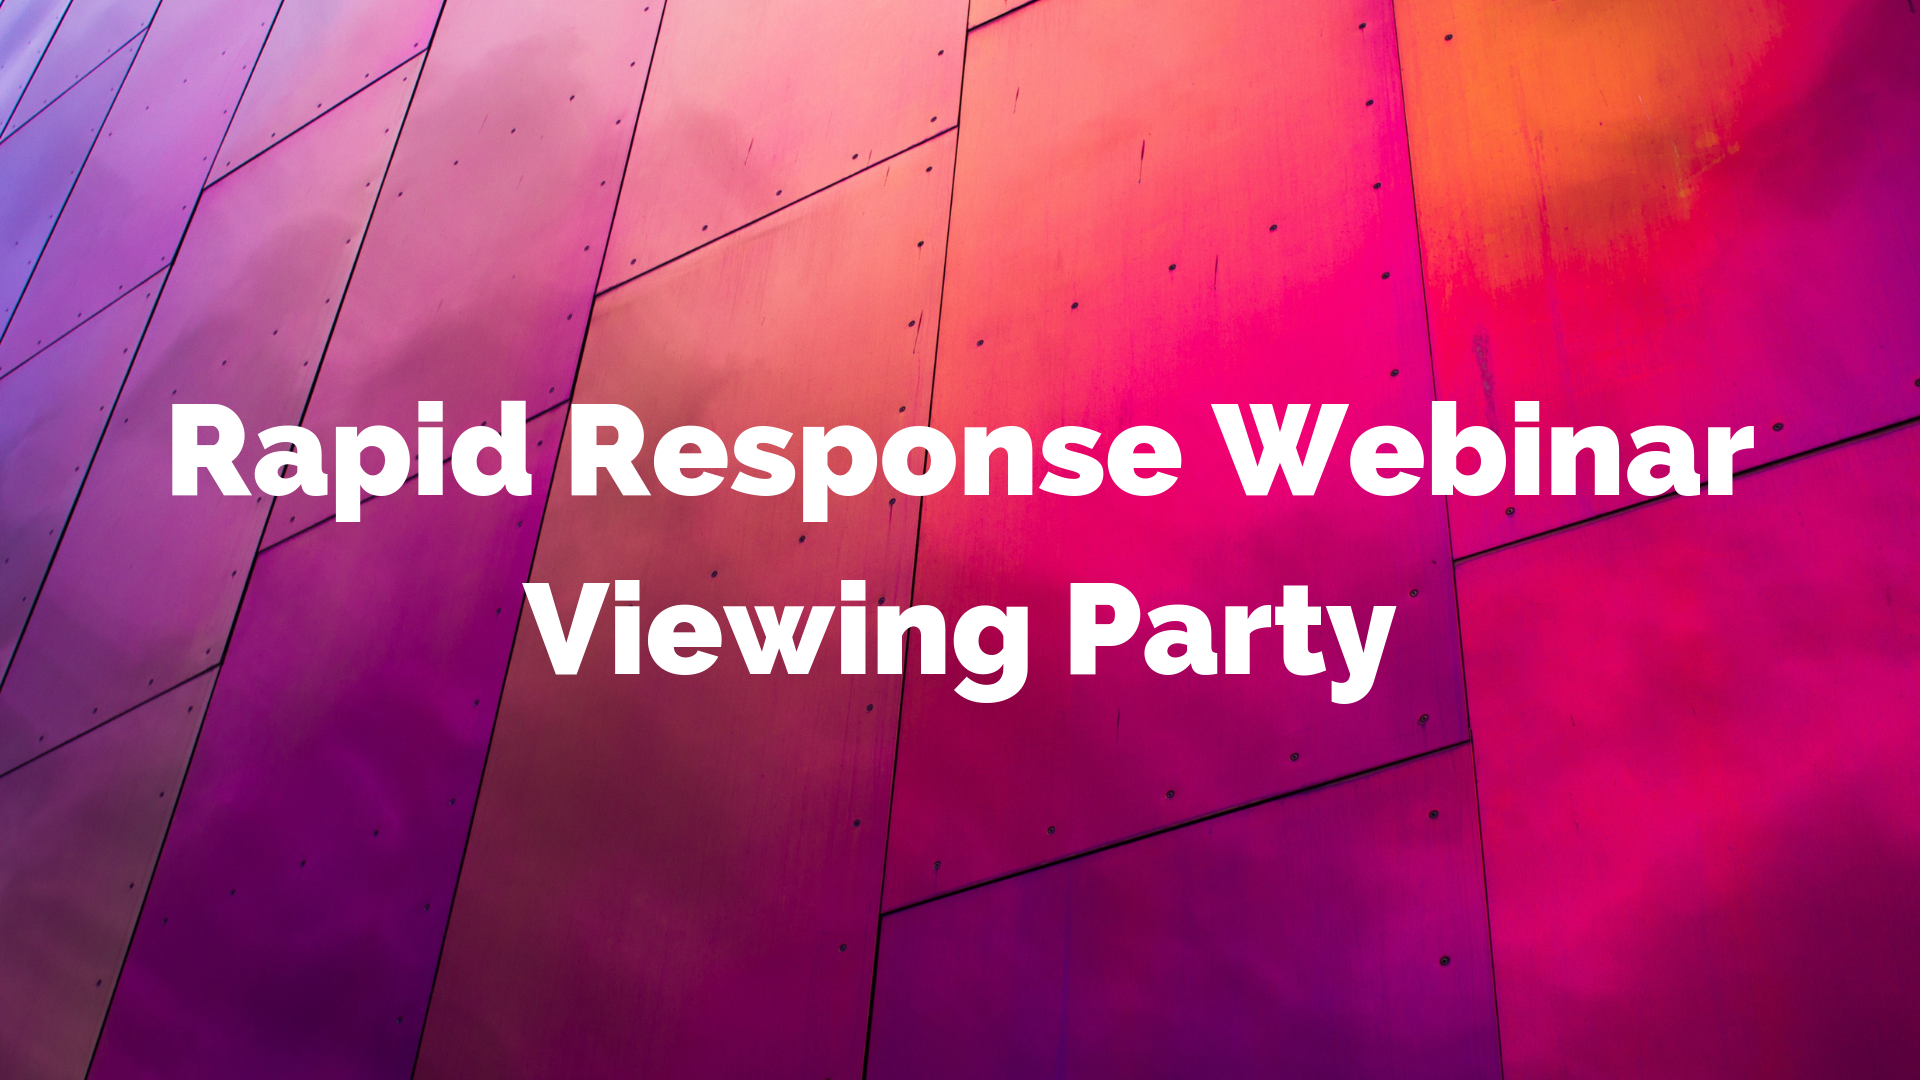 Image description: Pink/purple hue background, white text that reads: Rapid Response Webinar Viewing Party